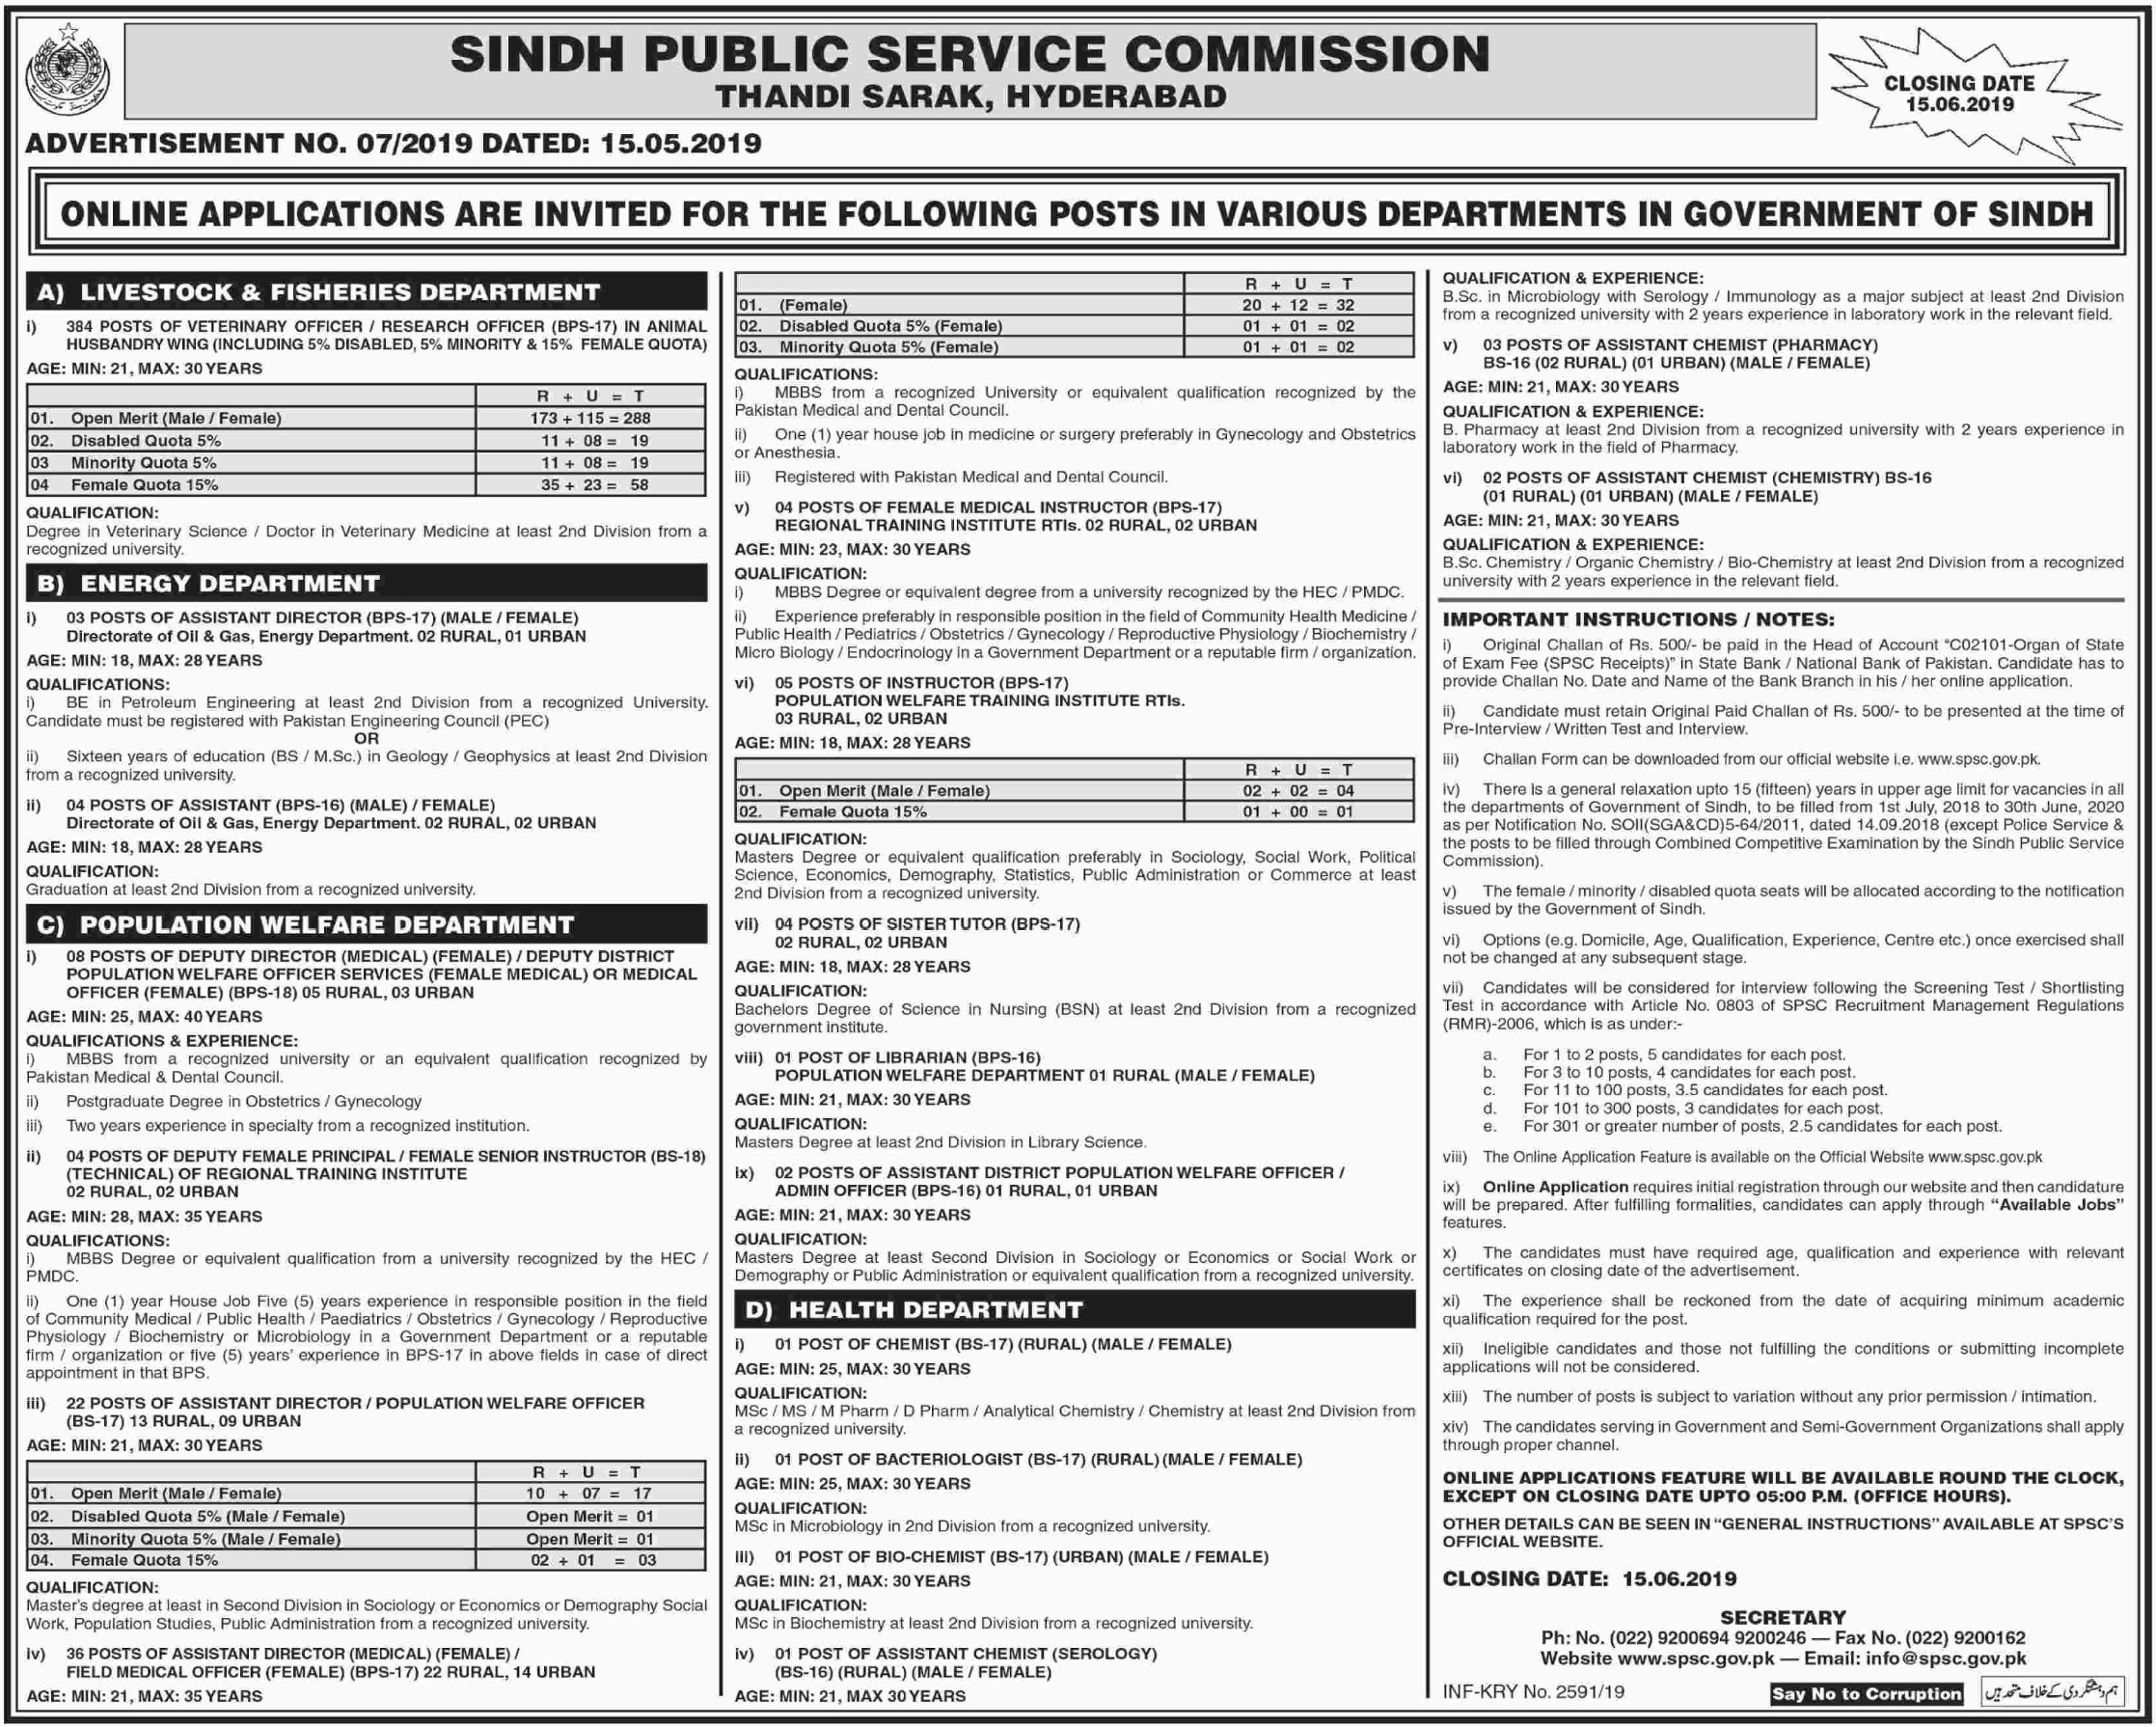 Sindh Public Service Commission SPSindh Public Service Commission SPSC Jobs 2019 LatestSC Jobs 2019 Latest